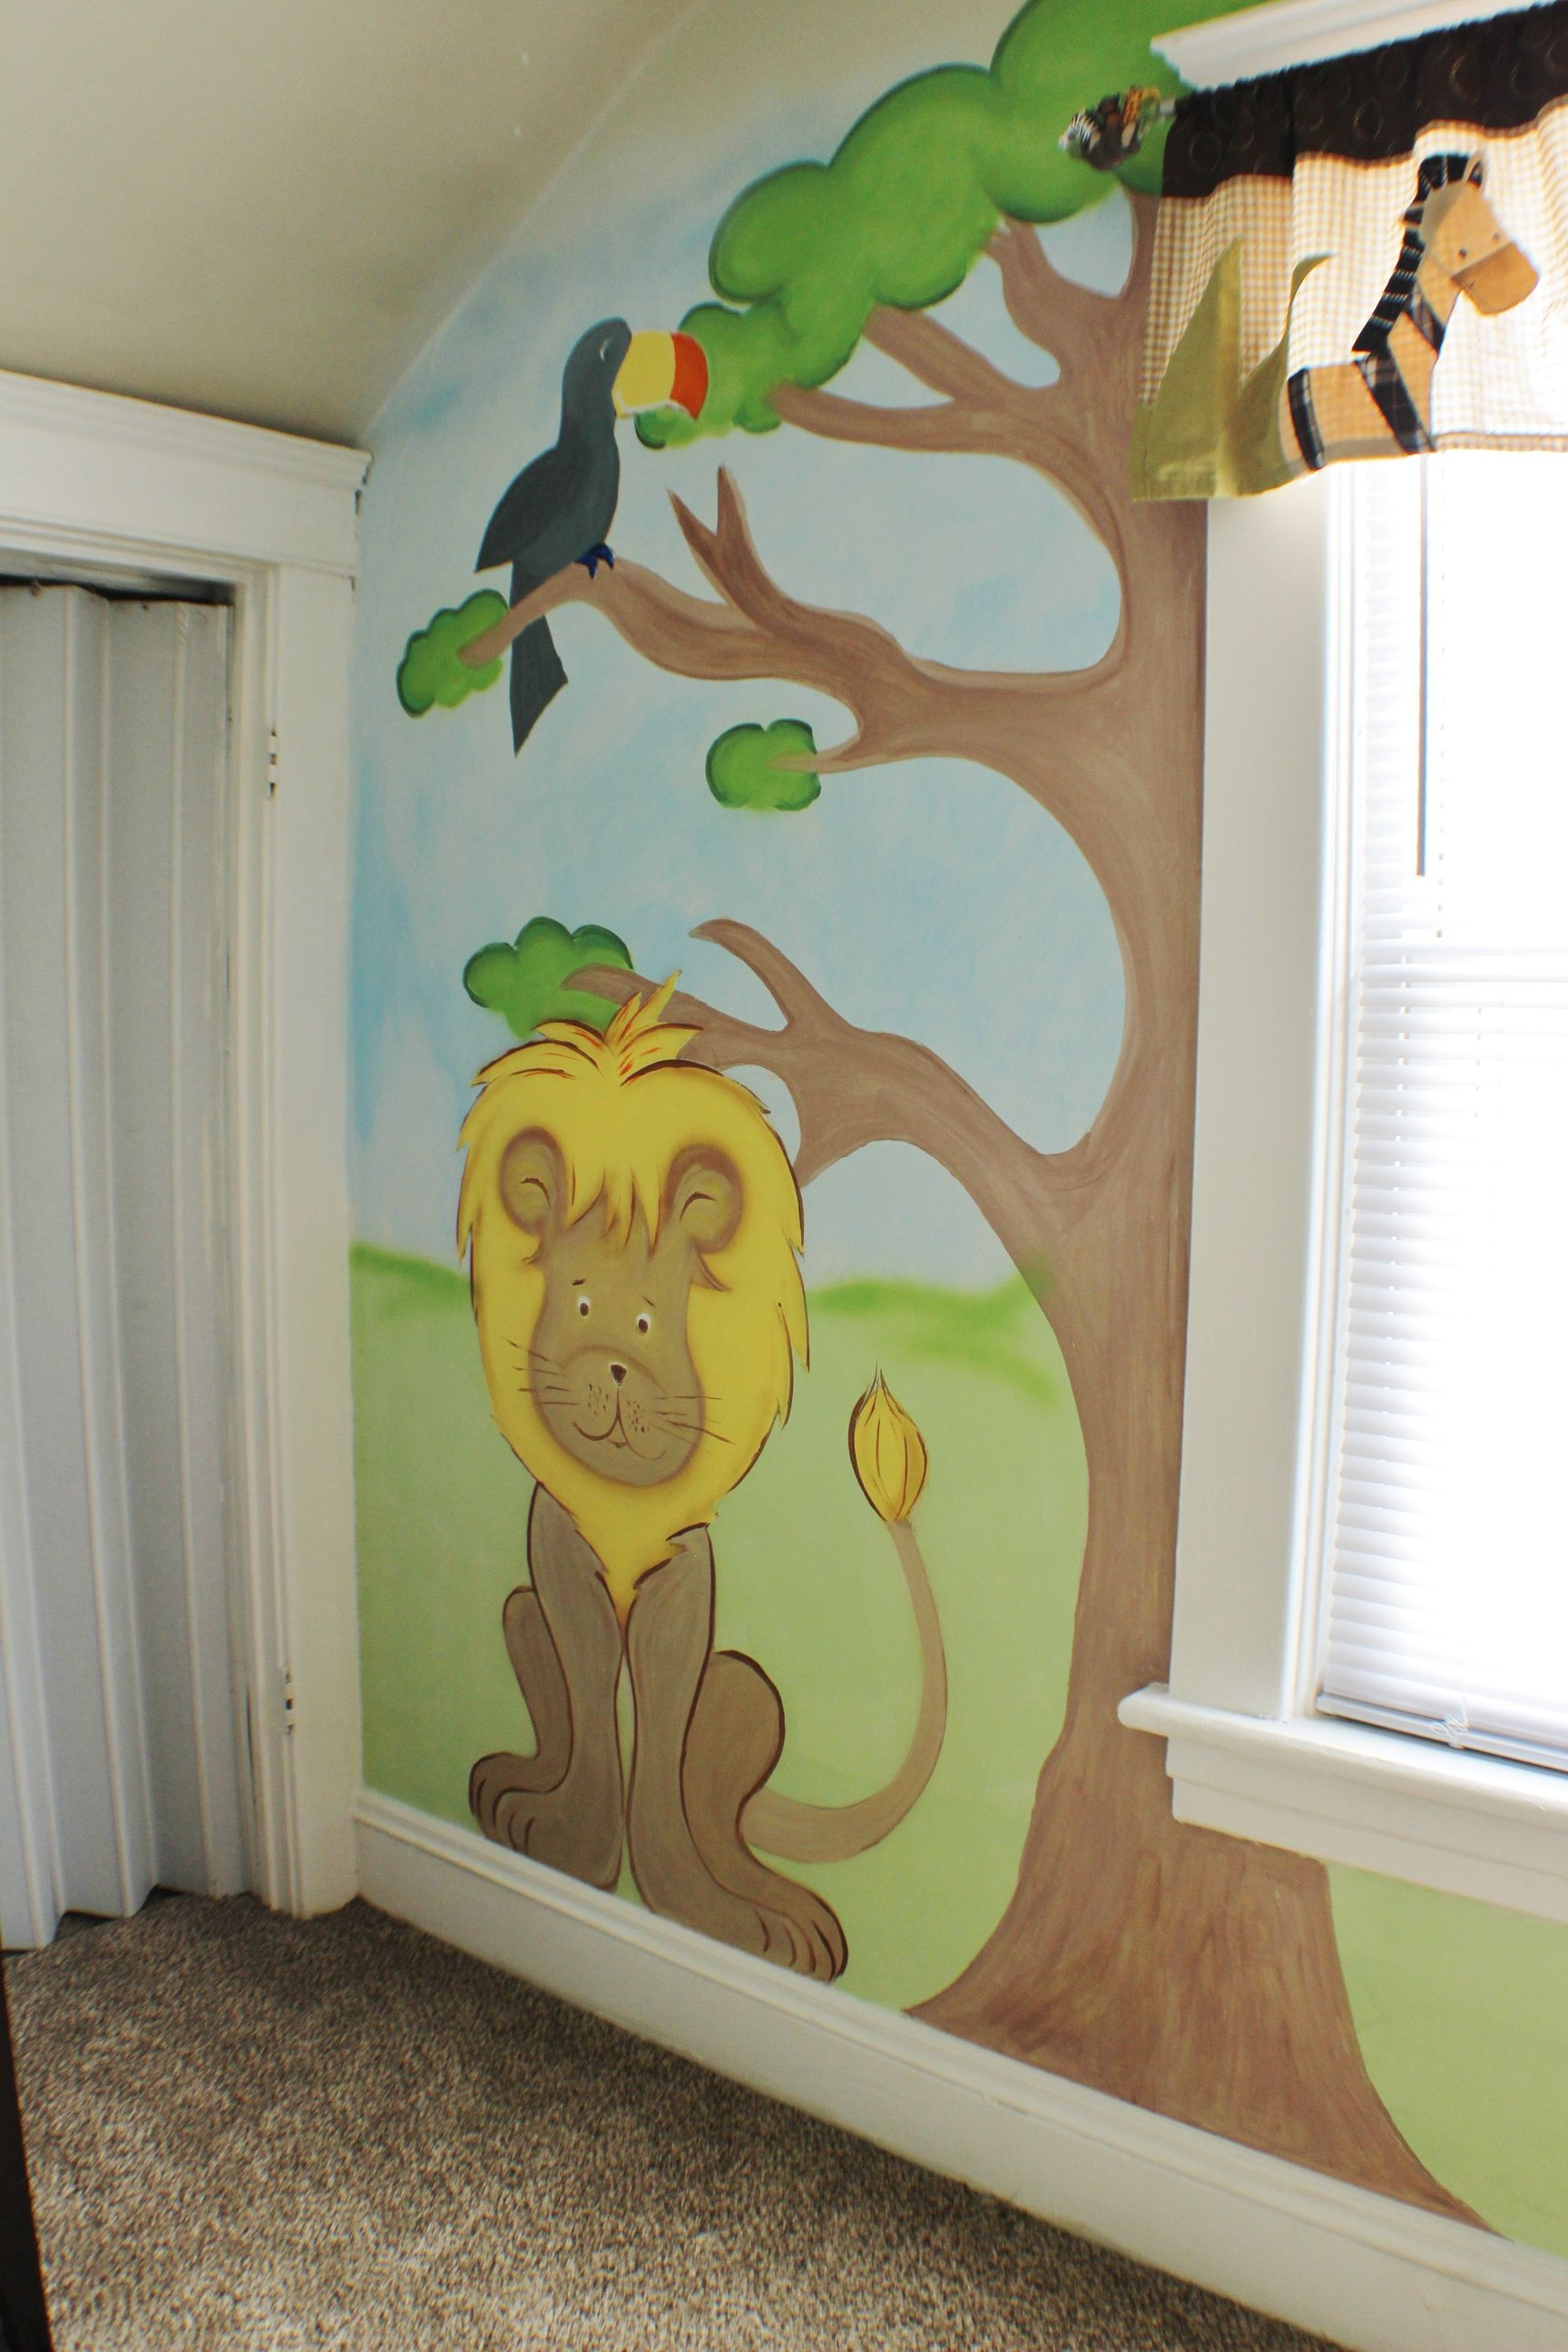 Hand painted lion on bedroom wall.